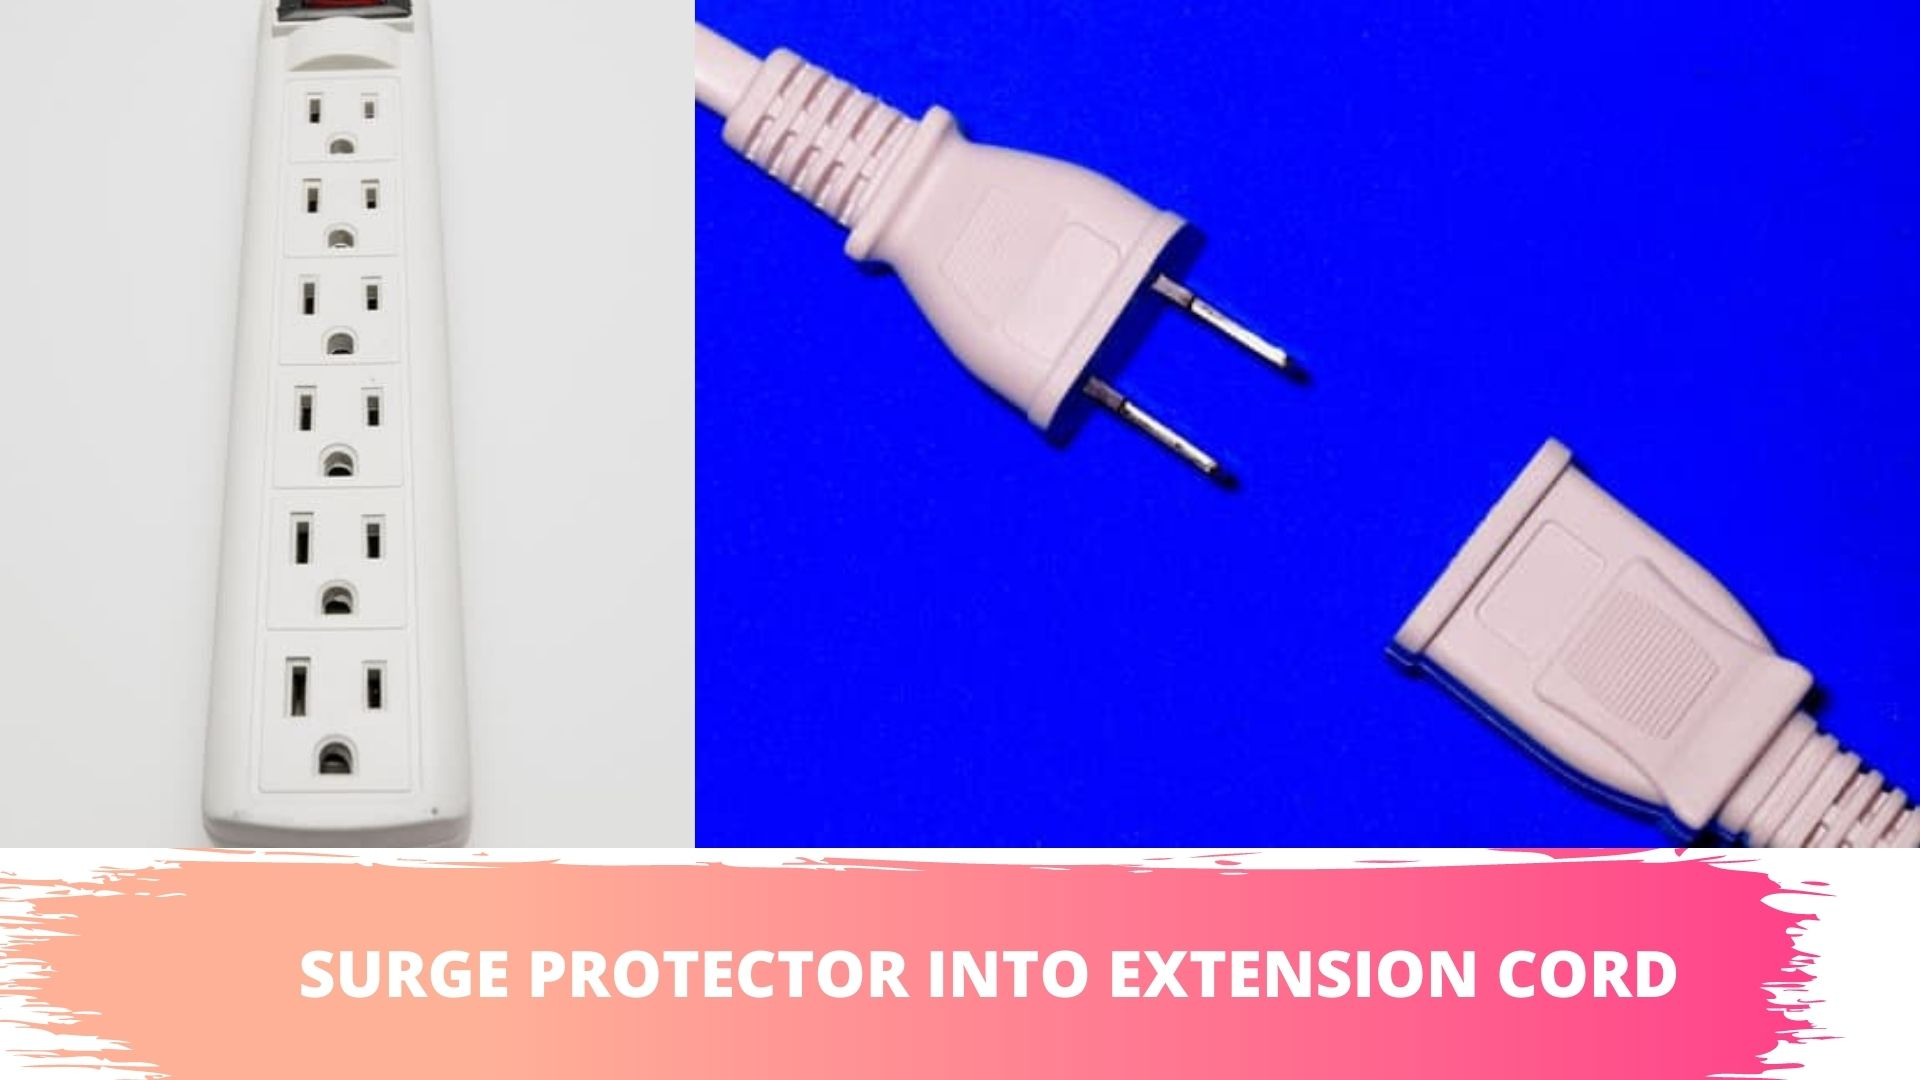 plugging surge protectors and extension cords into each other